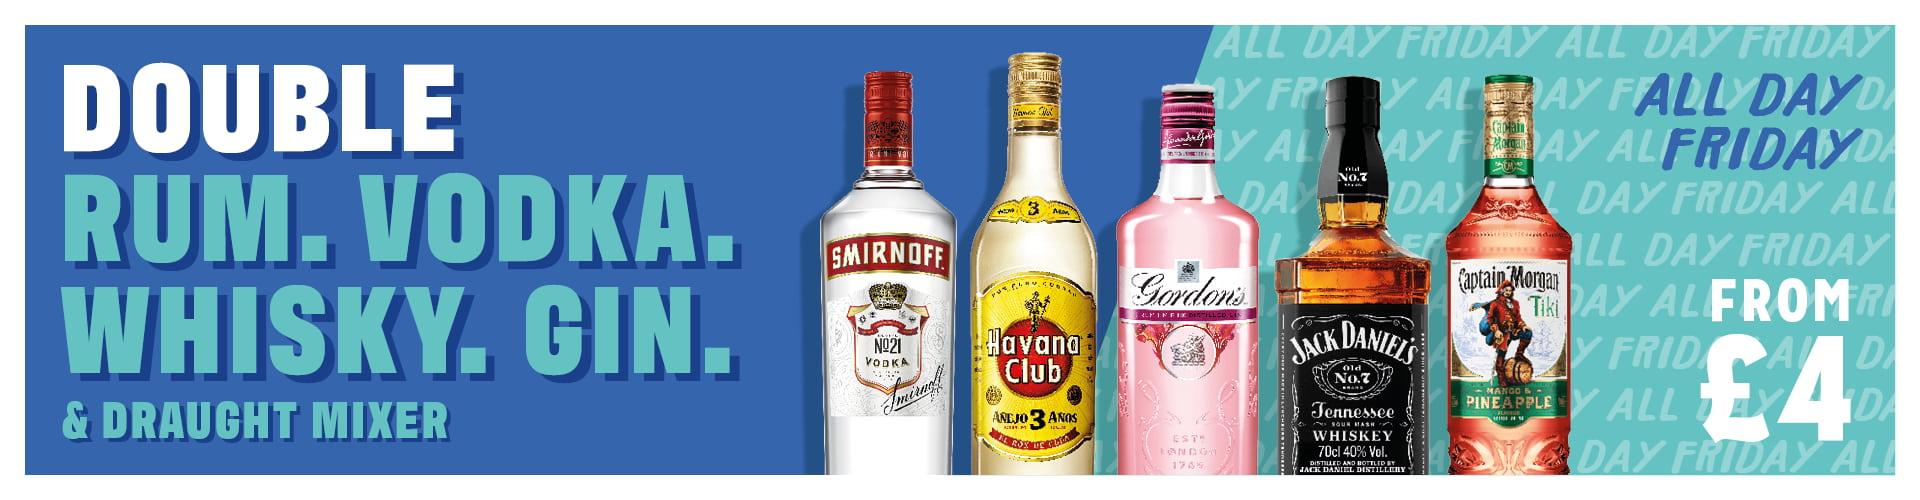 Double rum, vodka, whisky or gin and mixer for just £4. Available all day Friday.